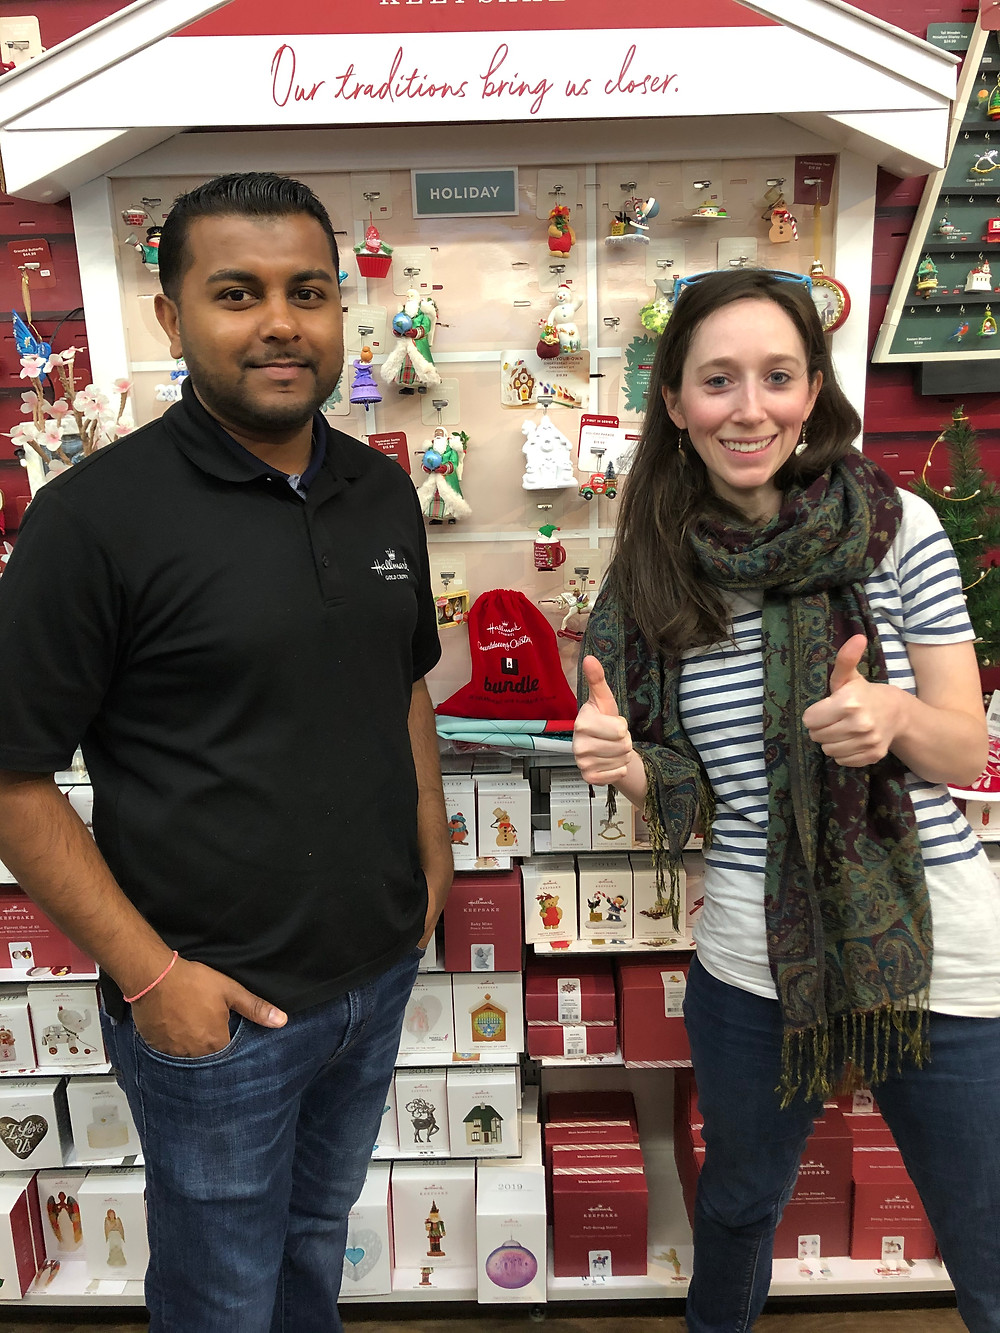 Cassie standing with Hallmark employee in front of game